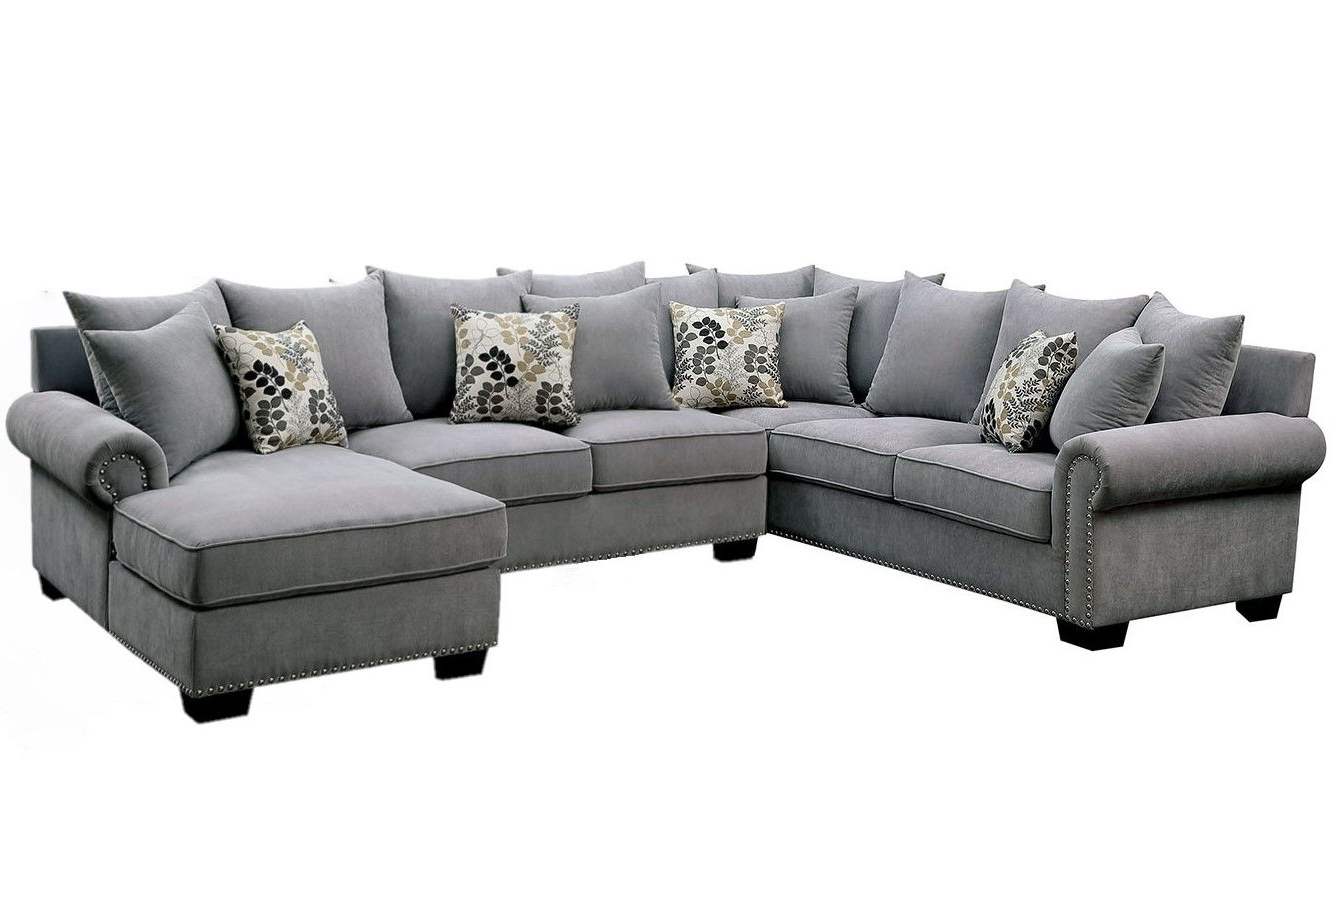 Skyler Ii Transitional Gray Fabric Upholstered Sectional Inside Recent 2Pc Polyfiber Sectional Sofas With Nailhead Trims Gray (View 10 of 25)